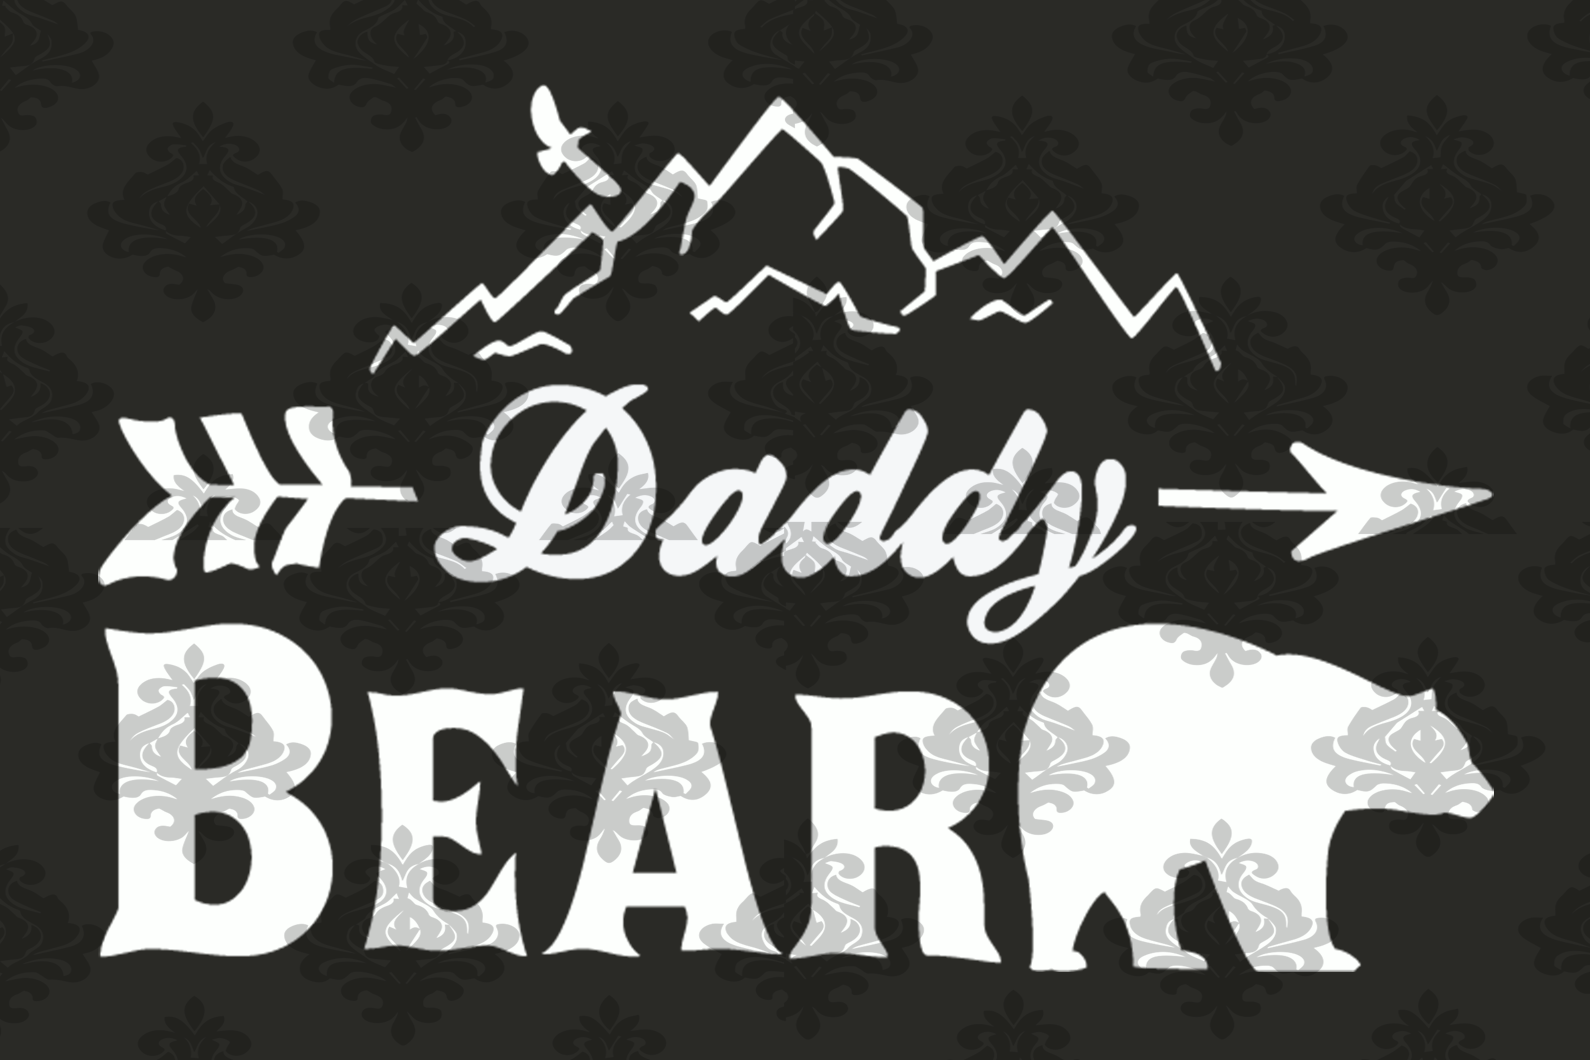 Daddy bear svg, Grizzly bear, Panda bear, family bears svg, family svg, family gift, gift for dad, mommy bear svg, bears lover, svg files for cricut, svg files